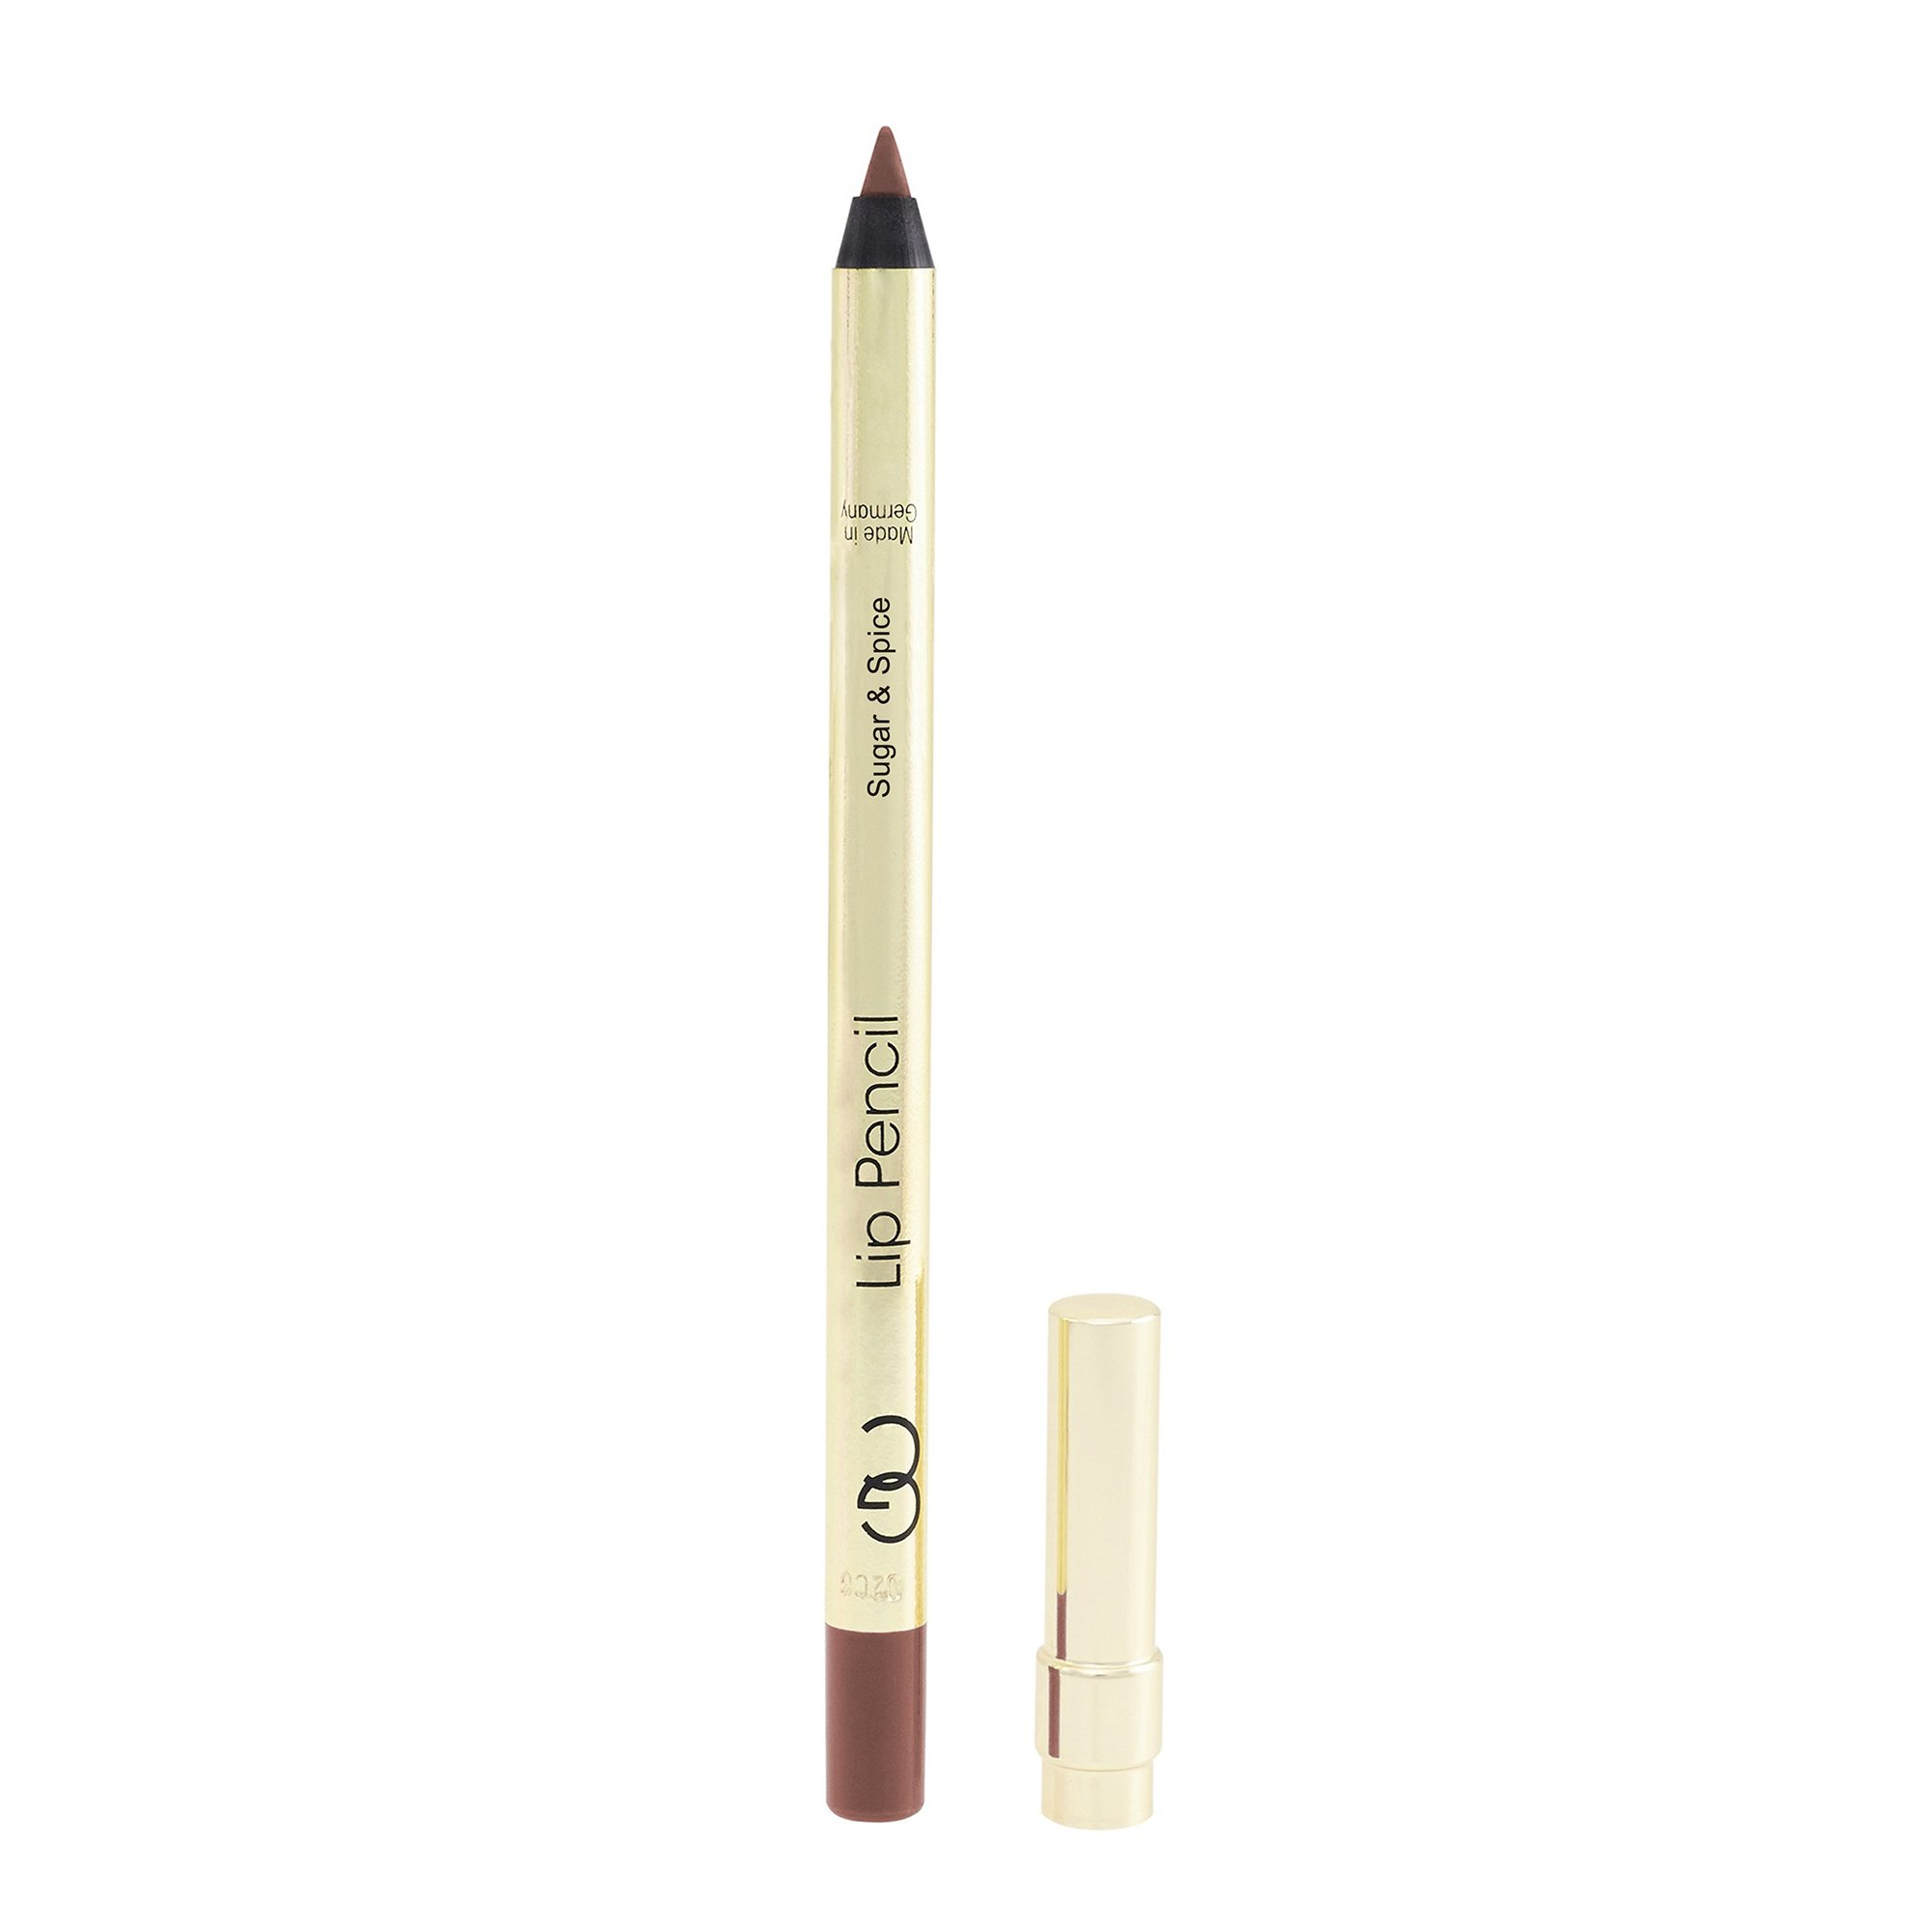 Gerard Cosmetics Lip Pencil - Sugar & Spice by Gerard Cosmetics